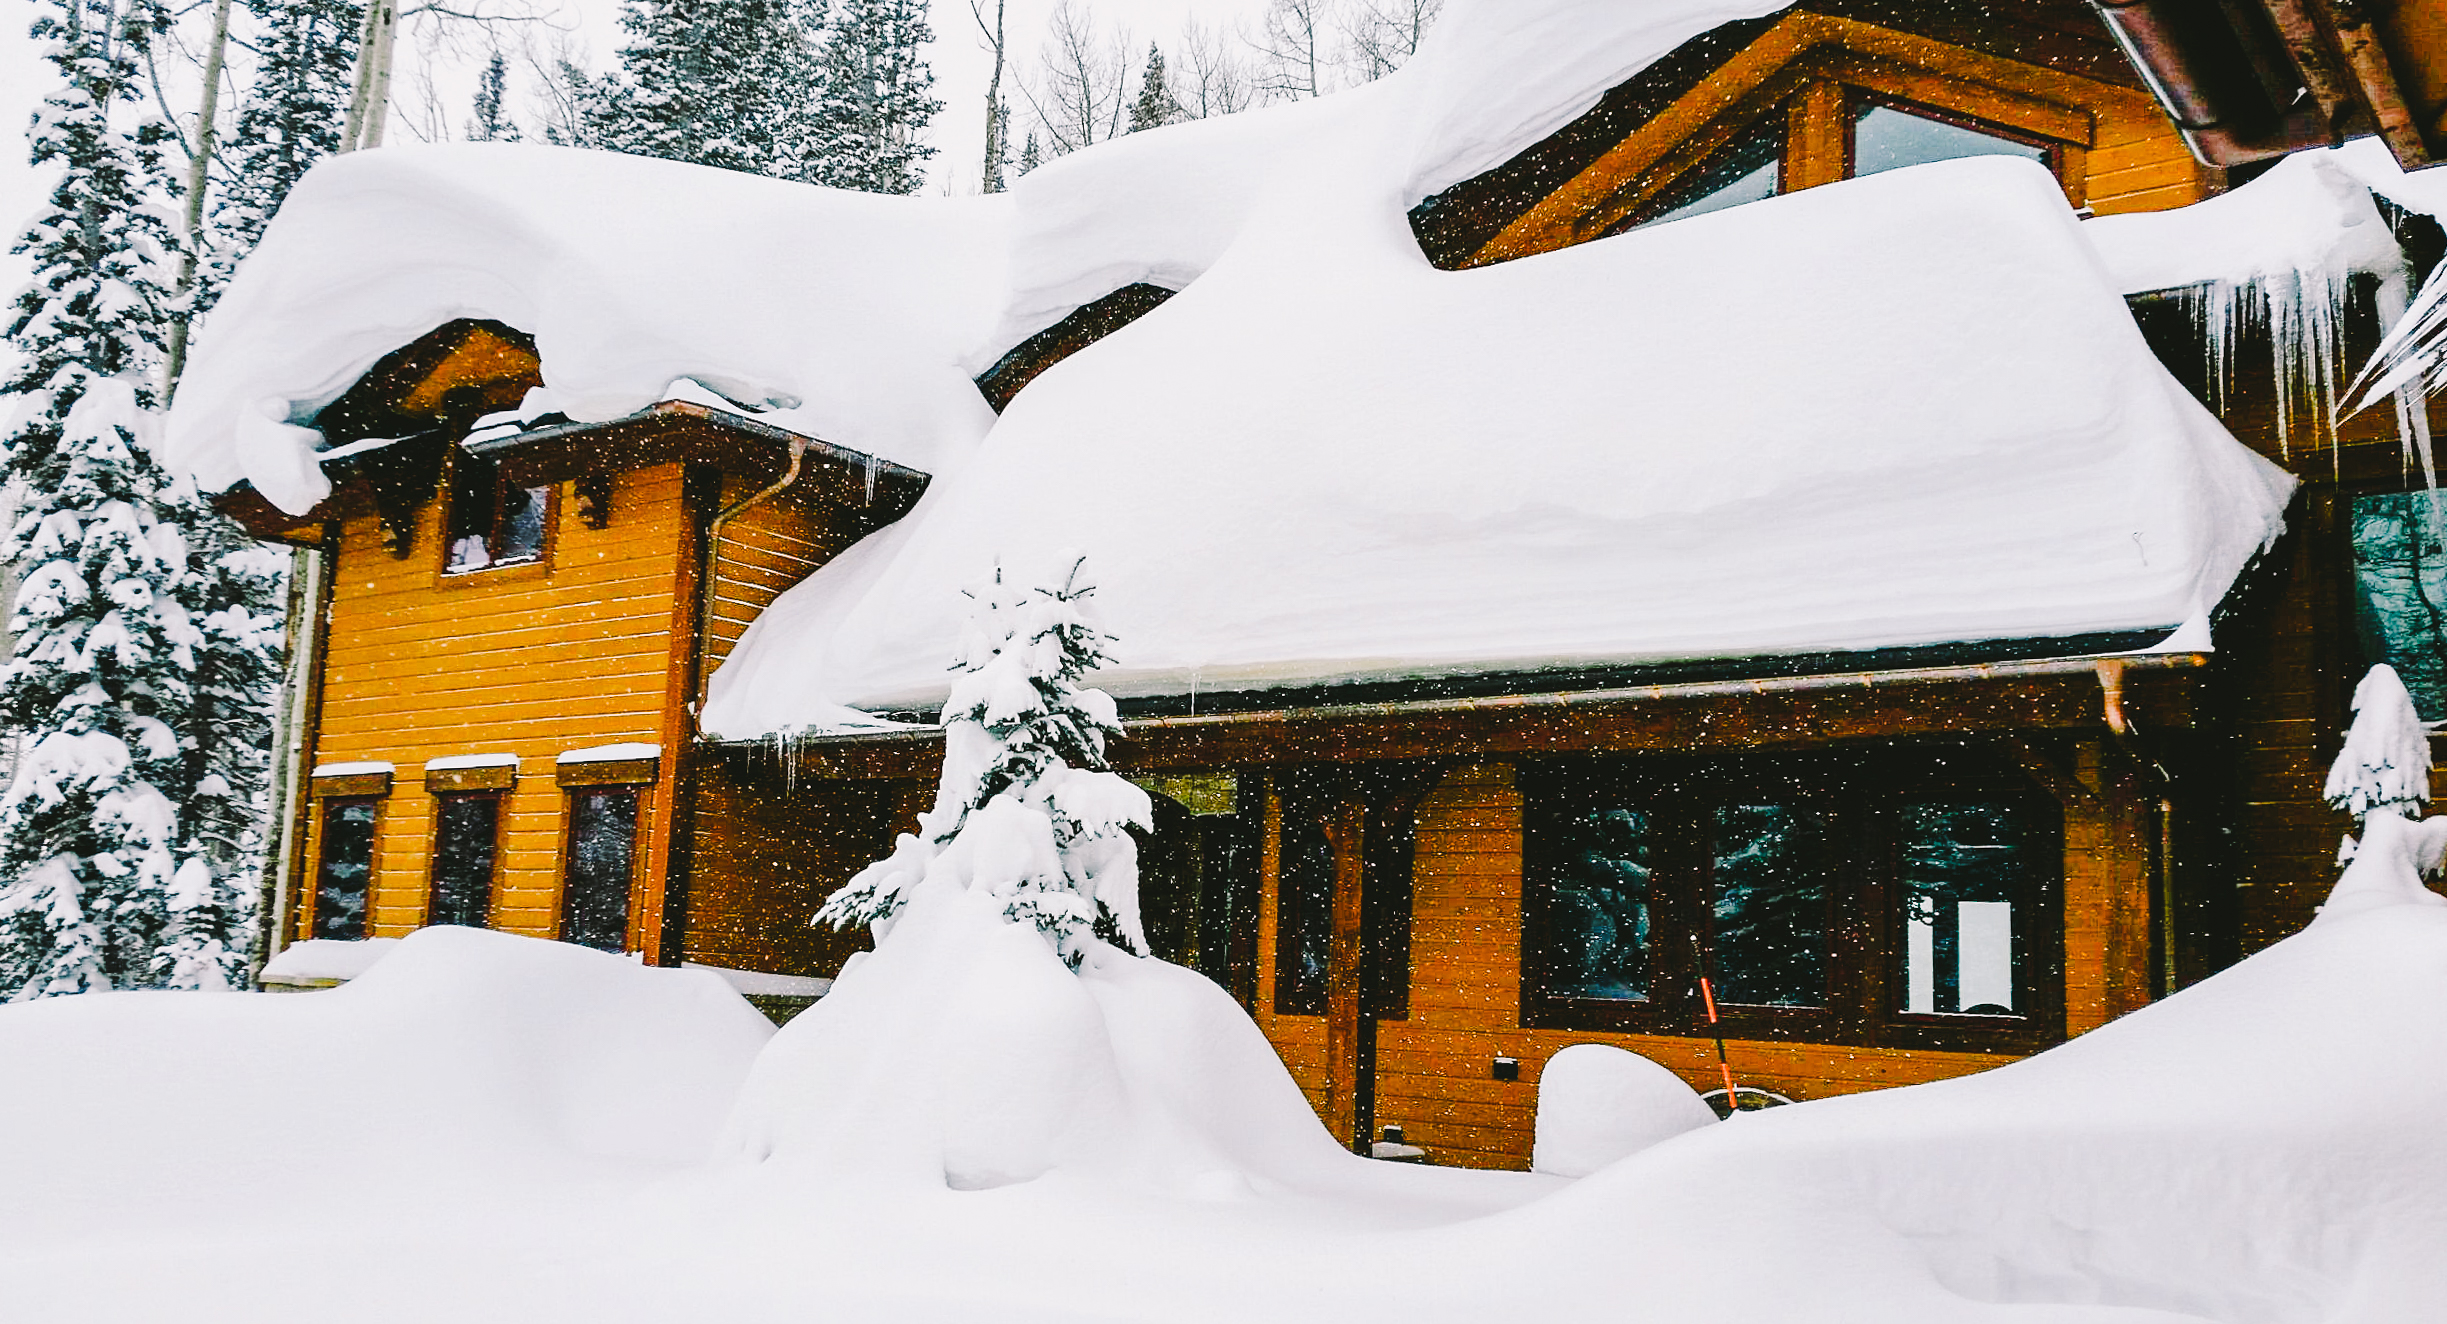 Snow Piling up on a Park City Homeowner's Roof.